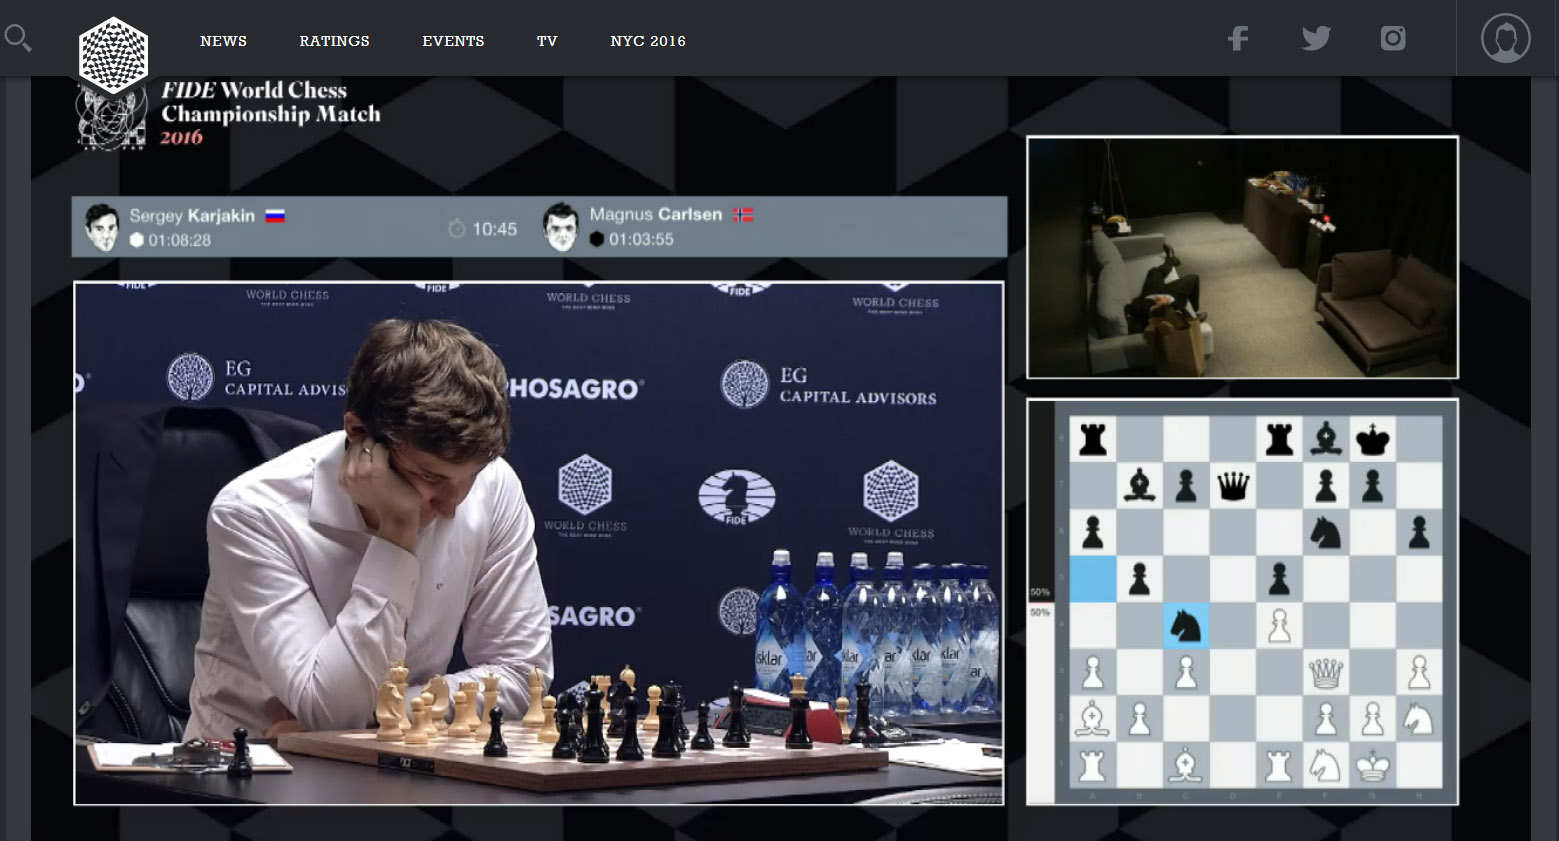 Carlsen ponders move after Karjakin's 17...Nc4